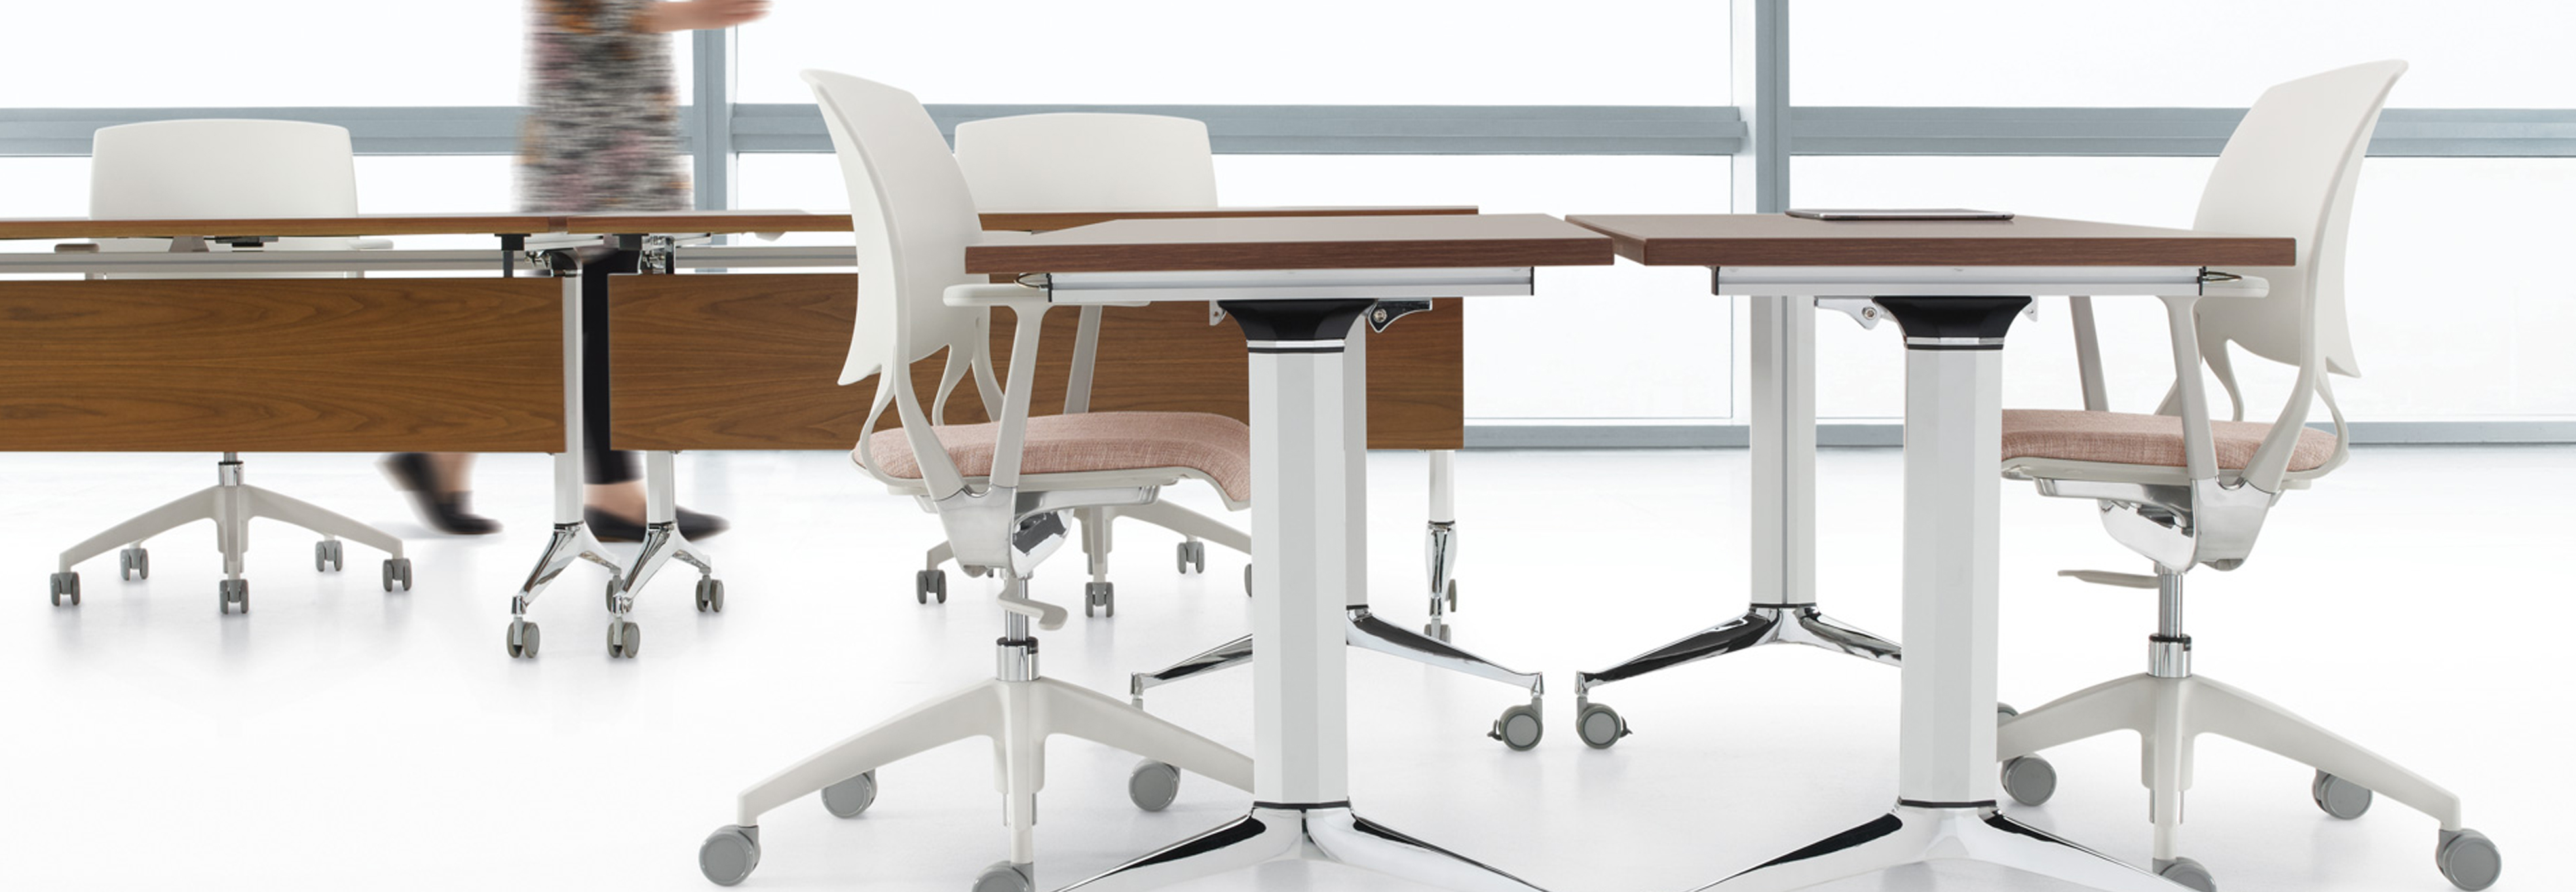 mobile office furniture austin